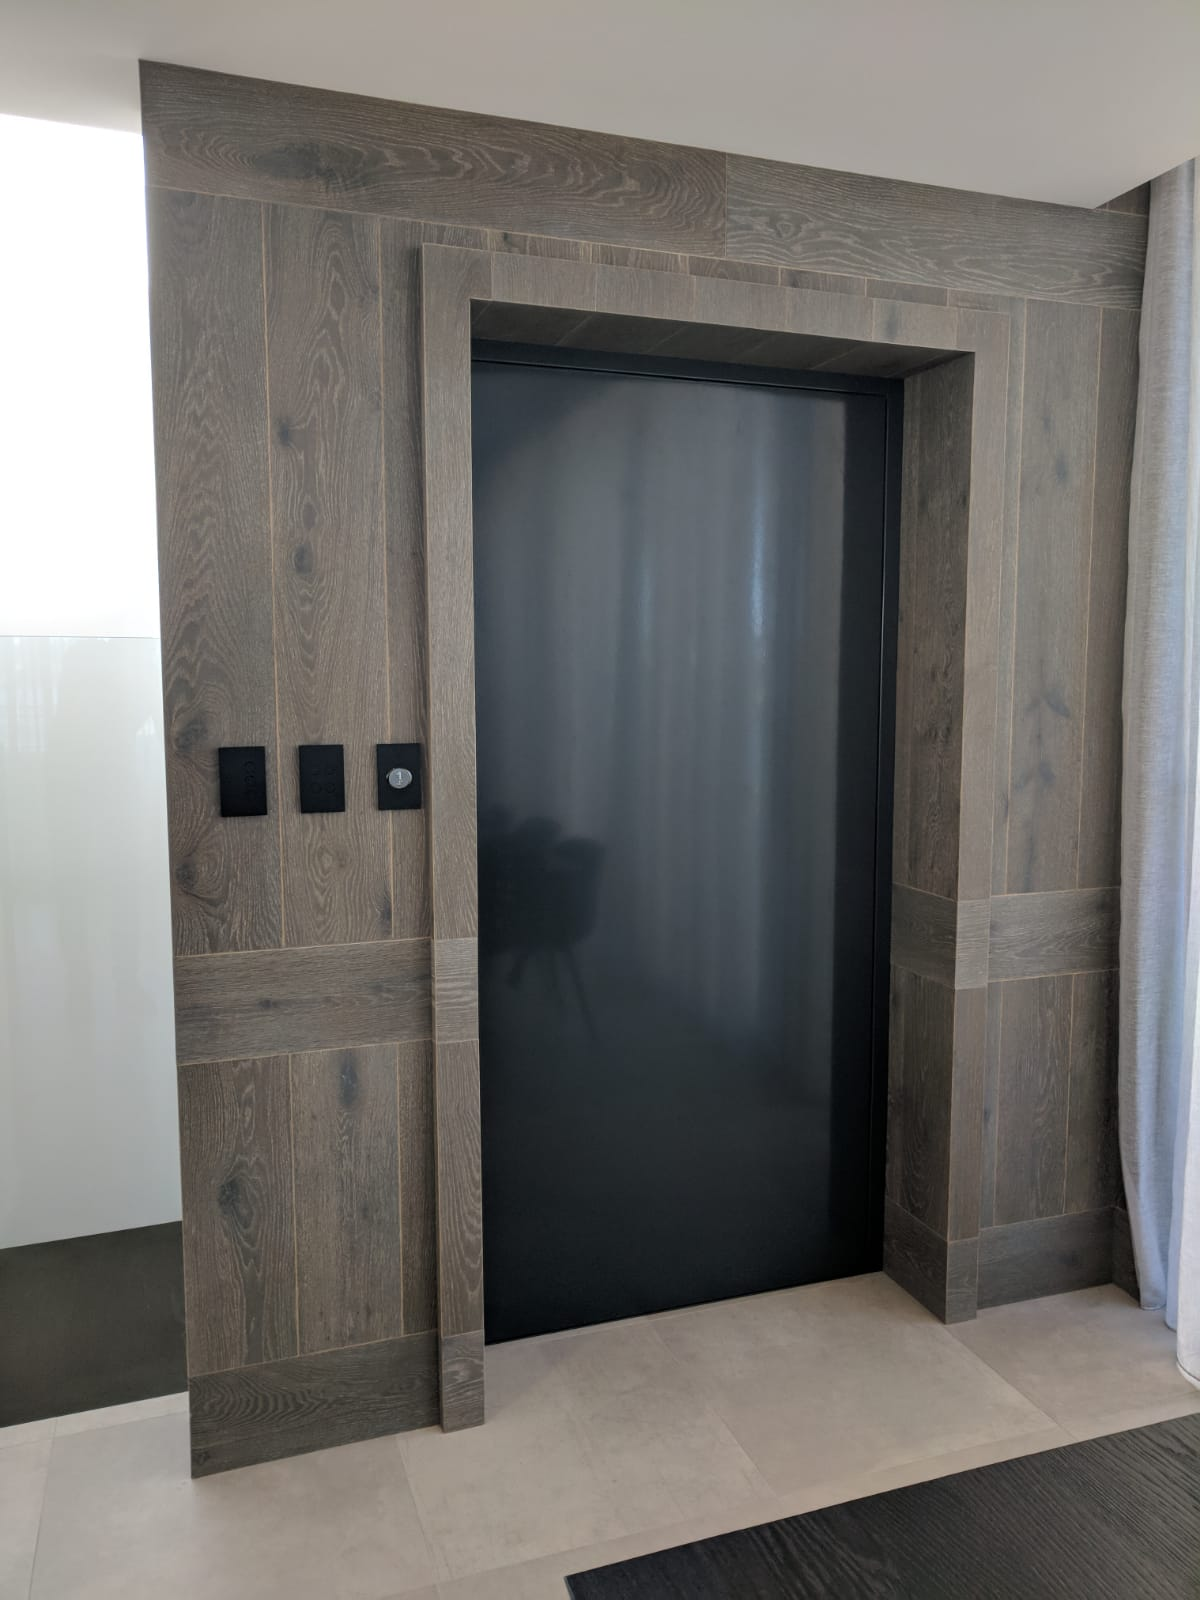 Classic lift company in Perth - West Coast Elevators